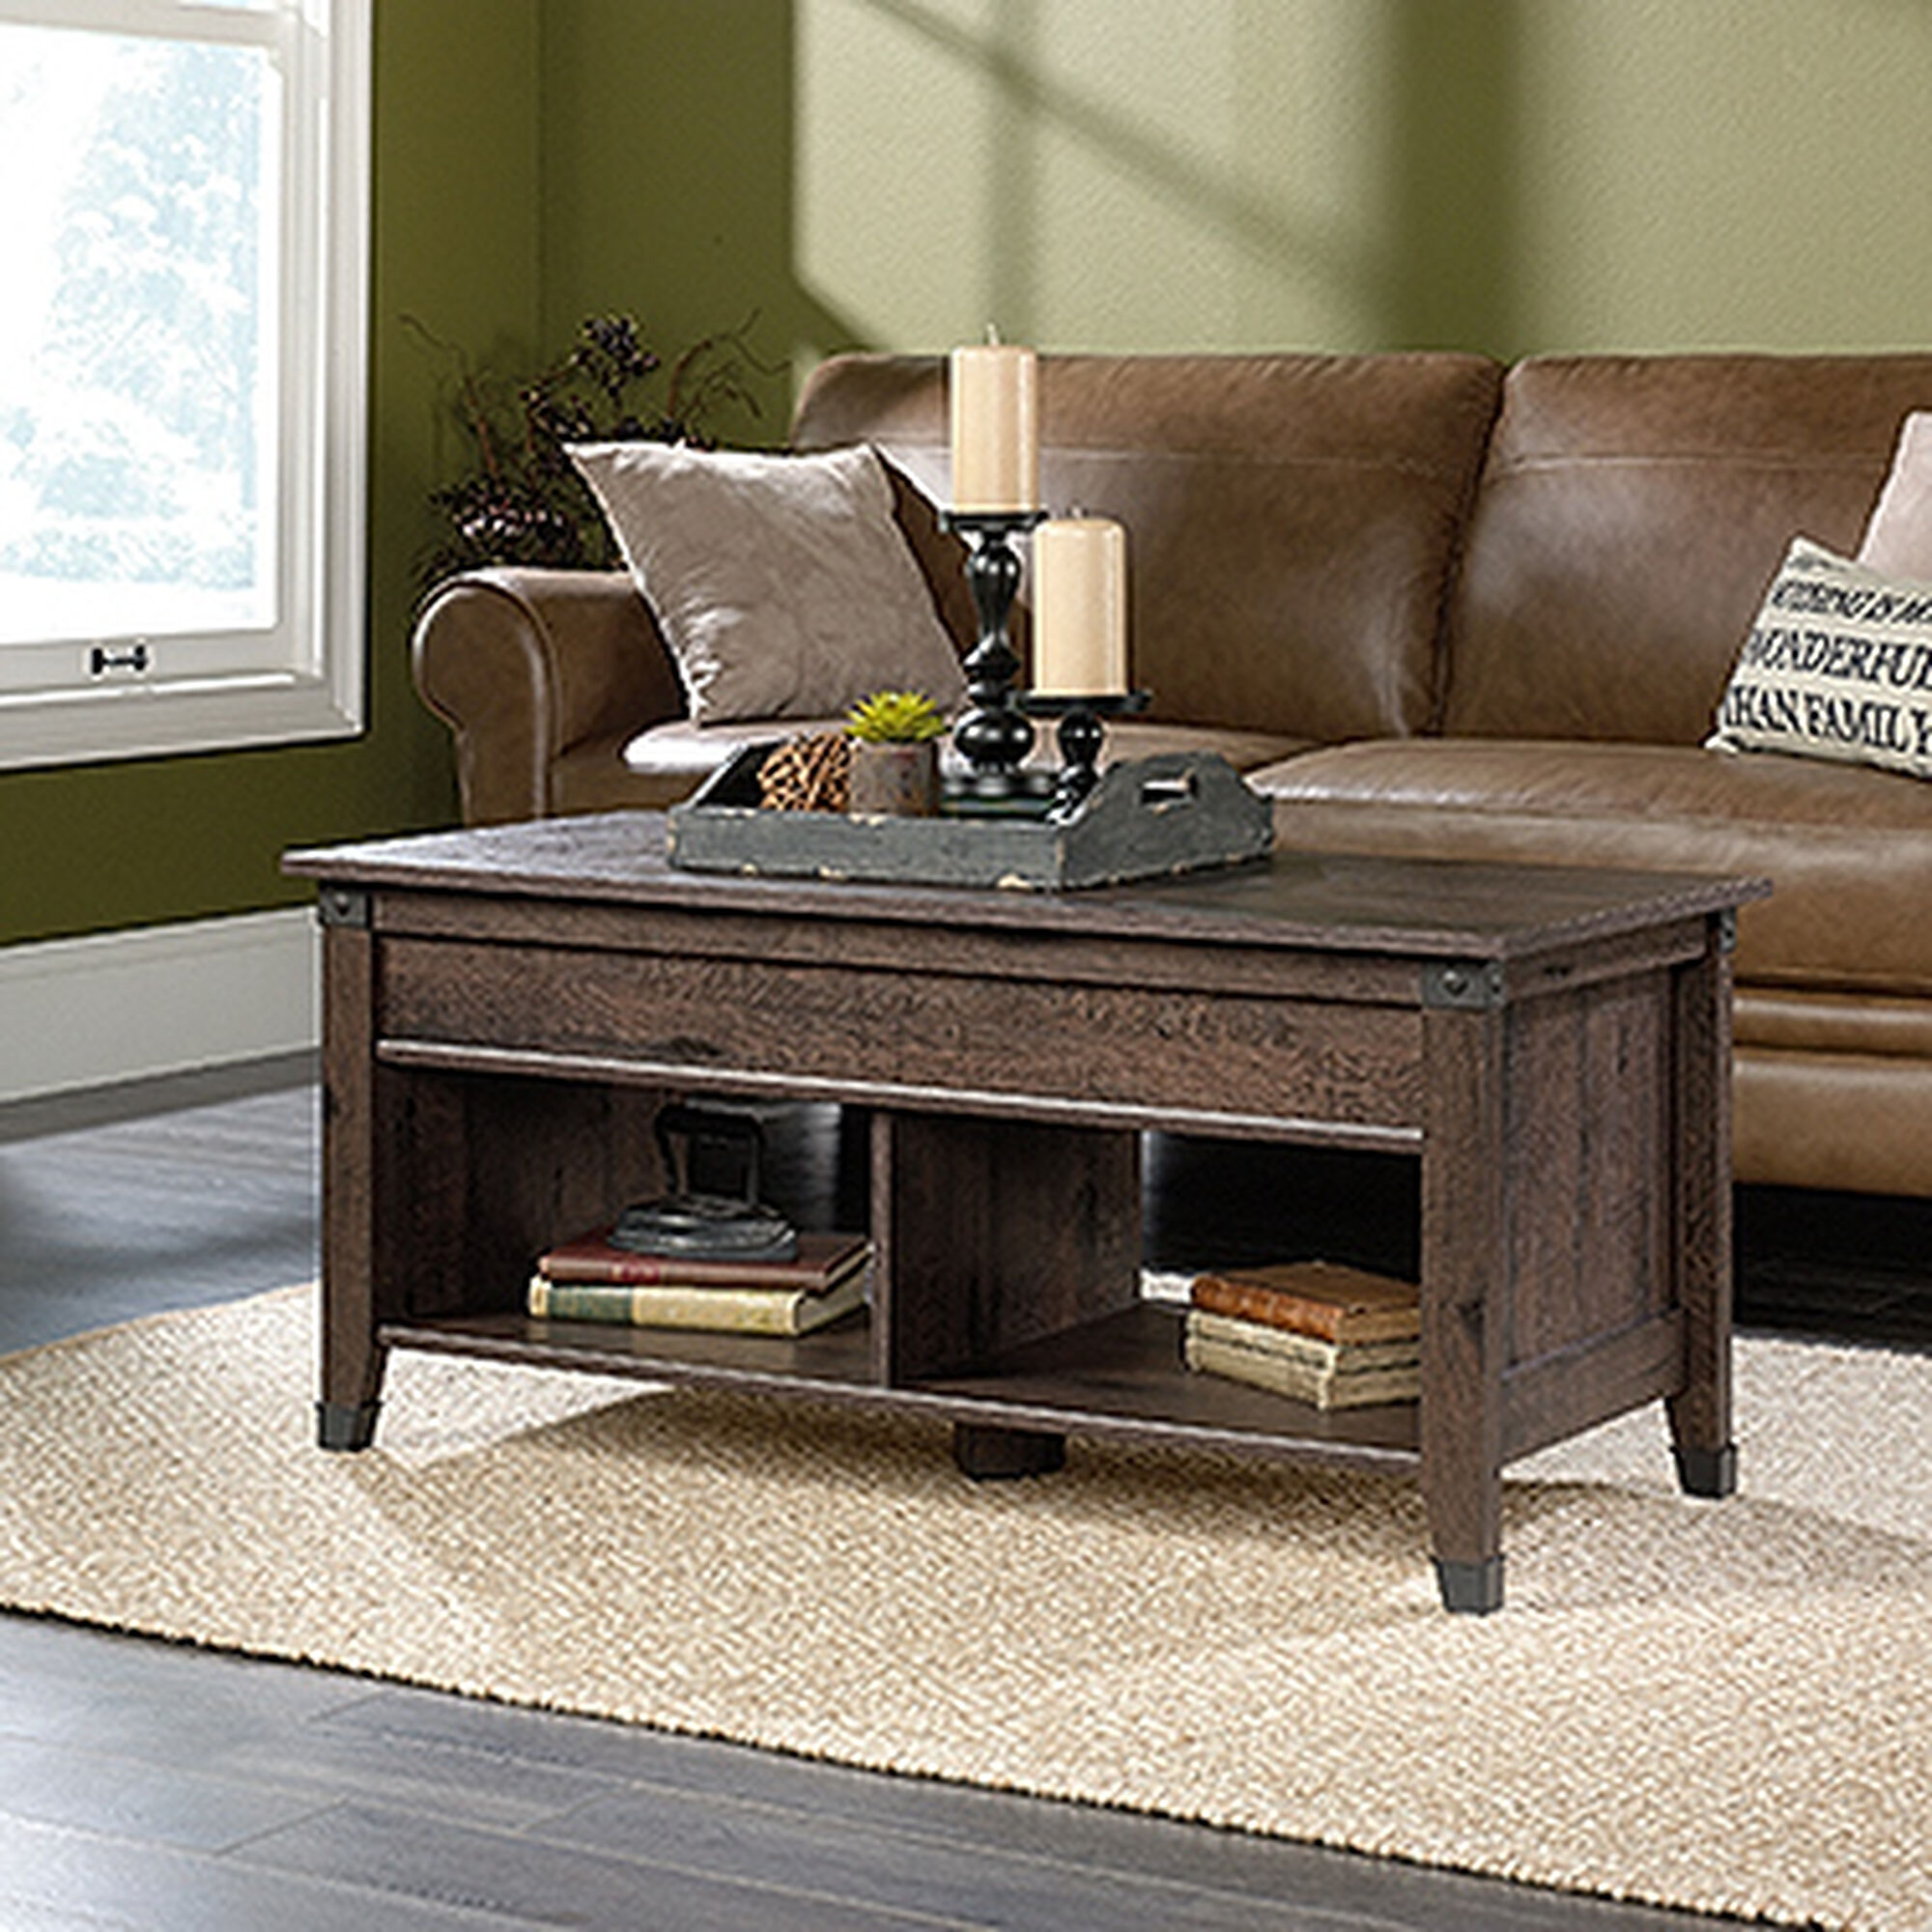 Images Rectangular Lift Top Contemporary Coffee Table Nbsp In Oak